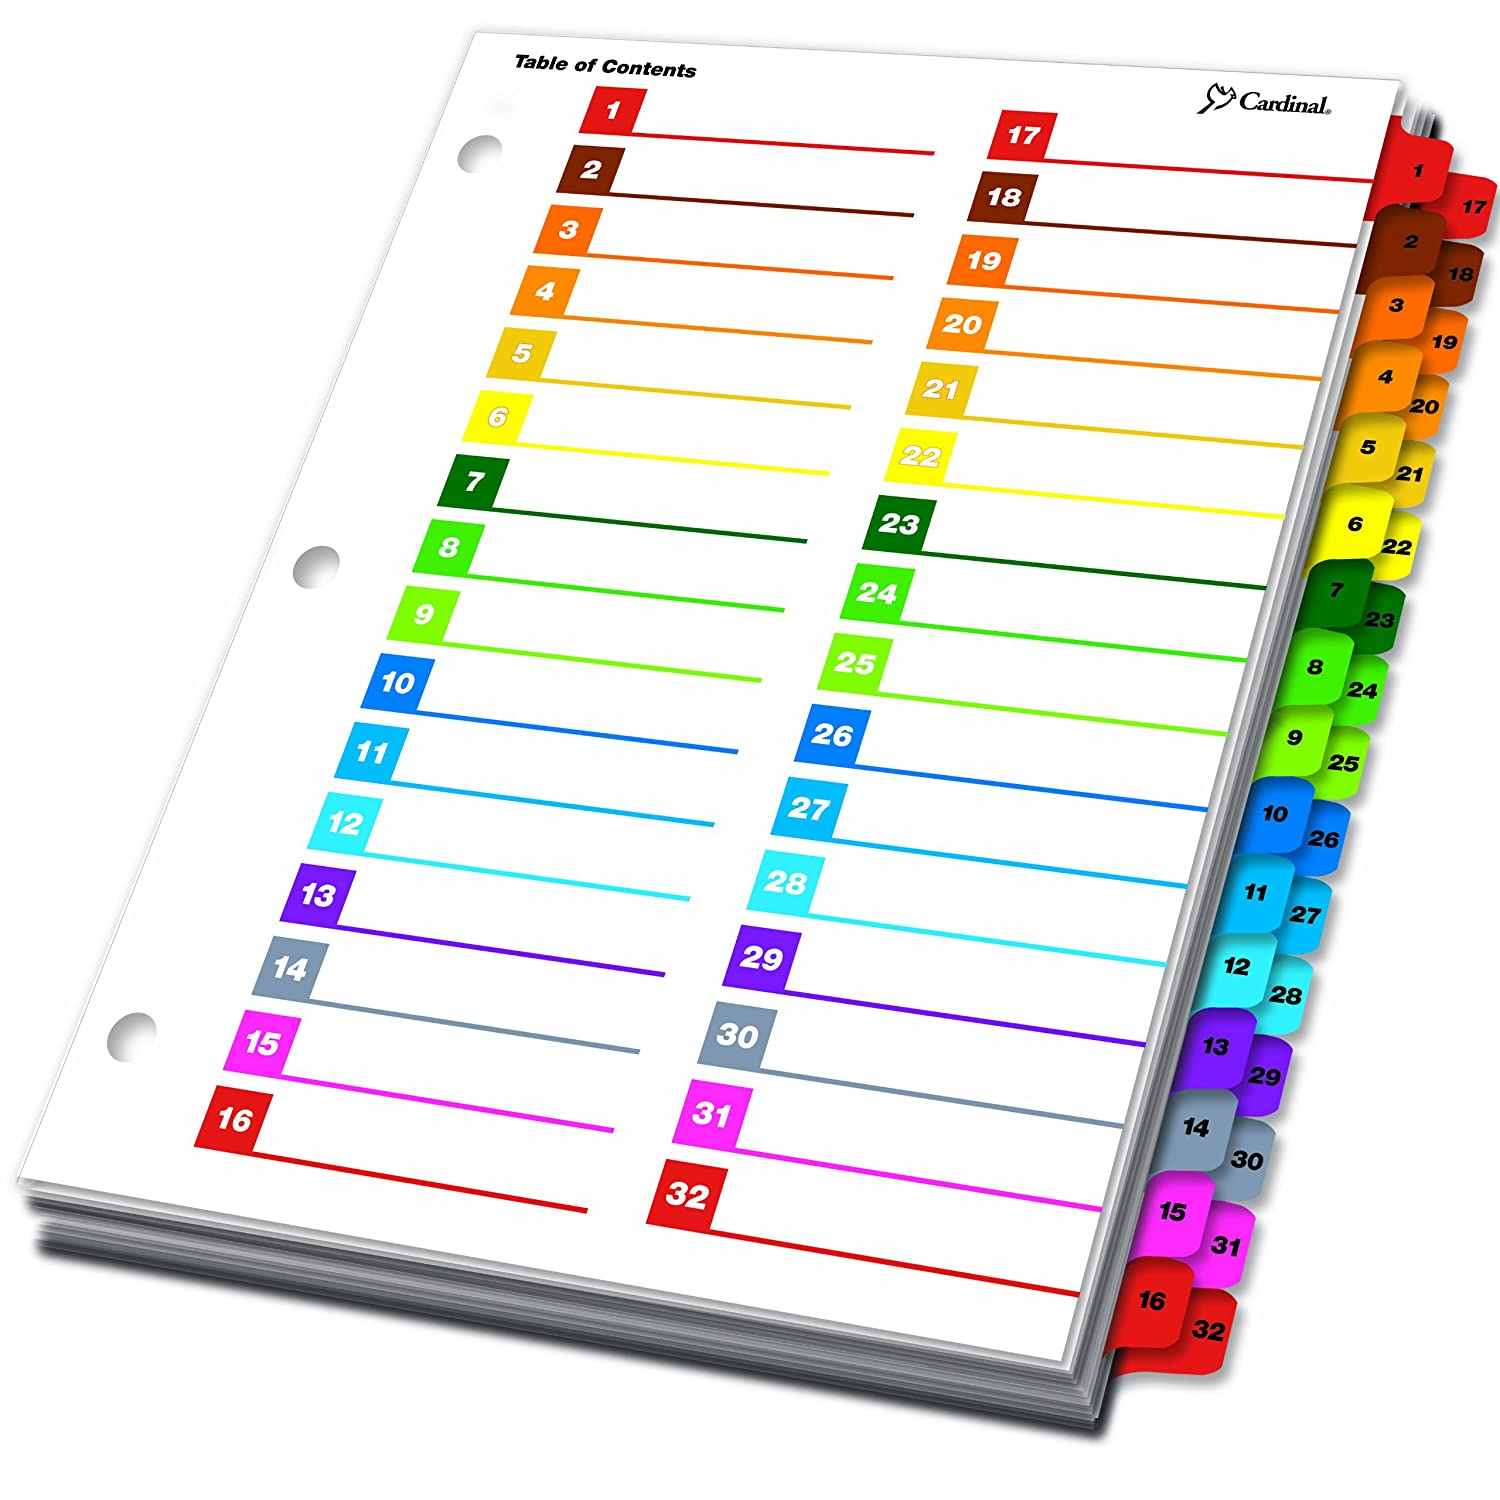 image relating to Divider Tabs Printable named Cardinal through TOPS Goods OneStep Printable Desk of Contents and Index Dividers, 52-Tab, Numbered, Multi-Shade (60990)